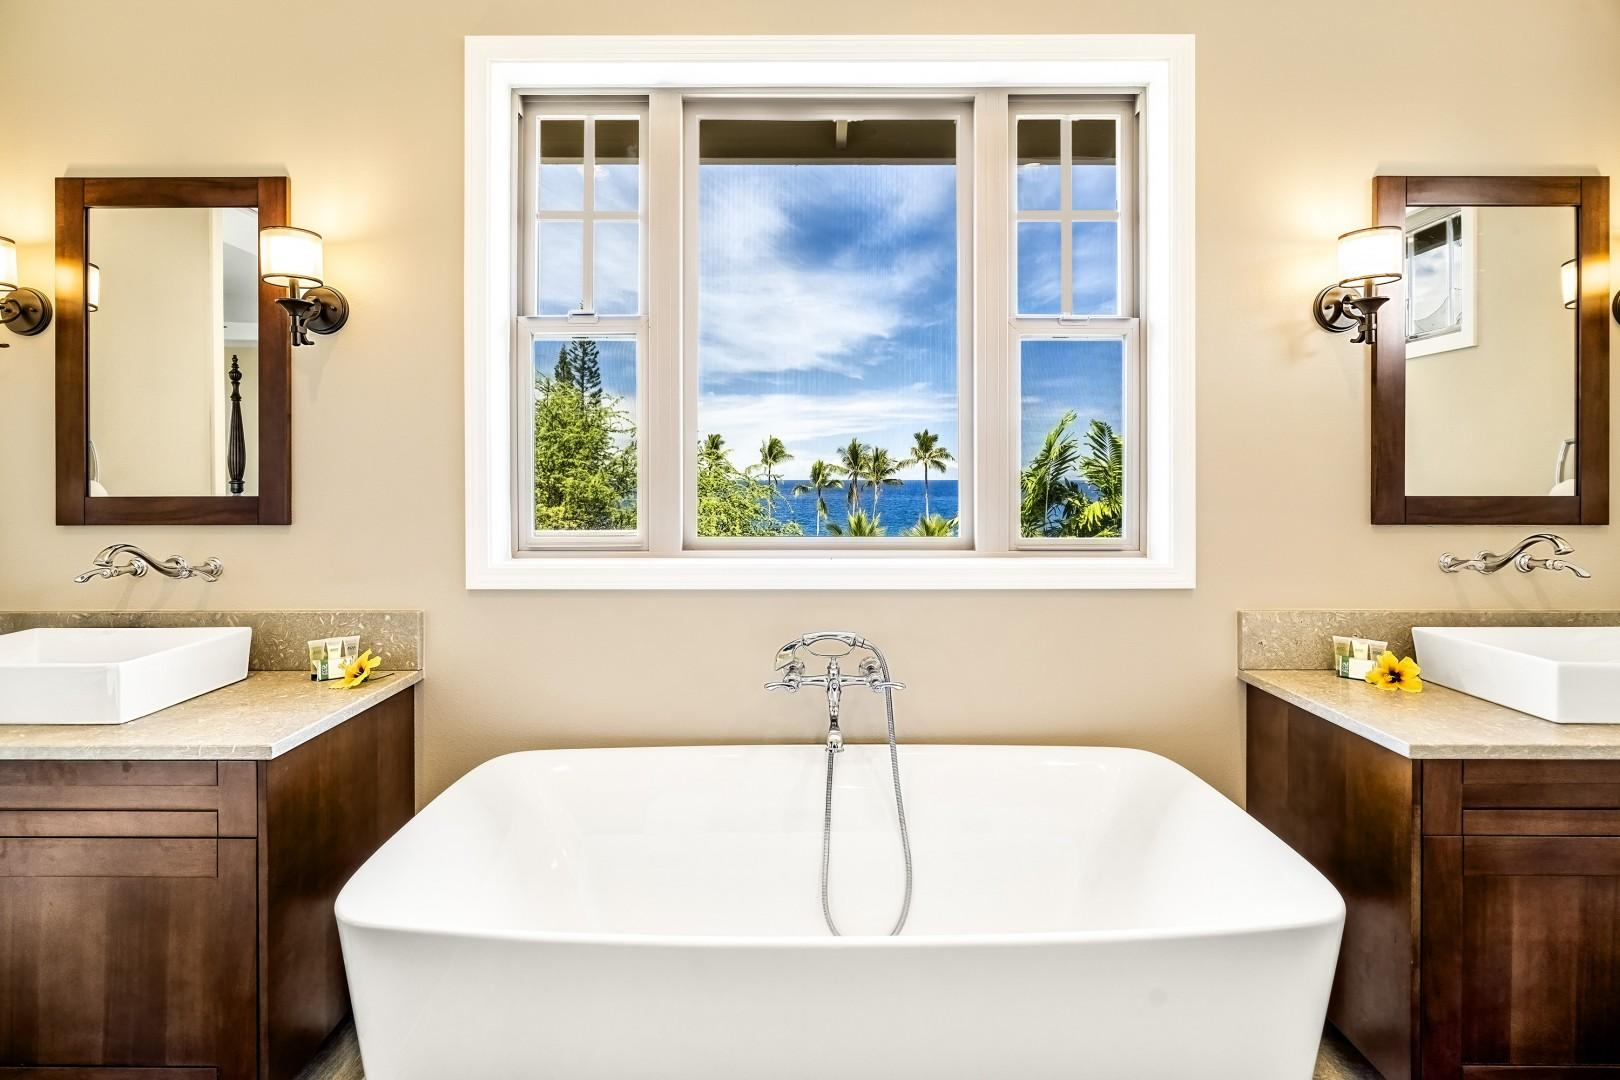 Soak in the tub while taking in the views!